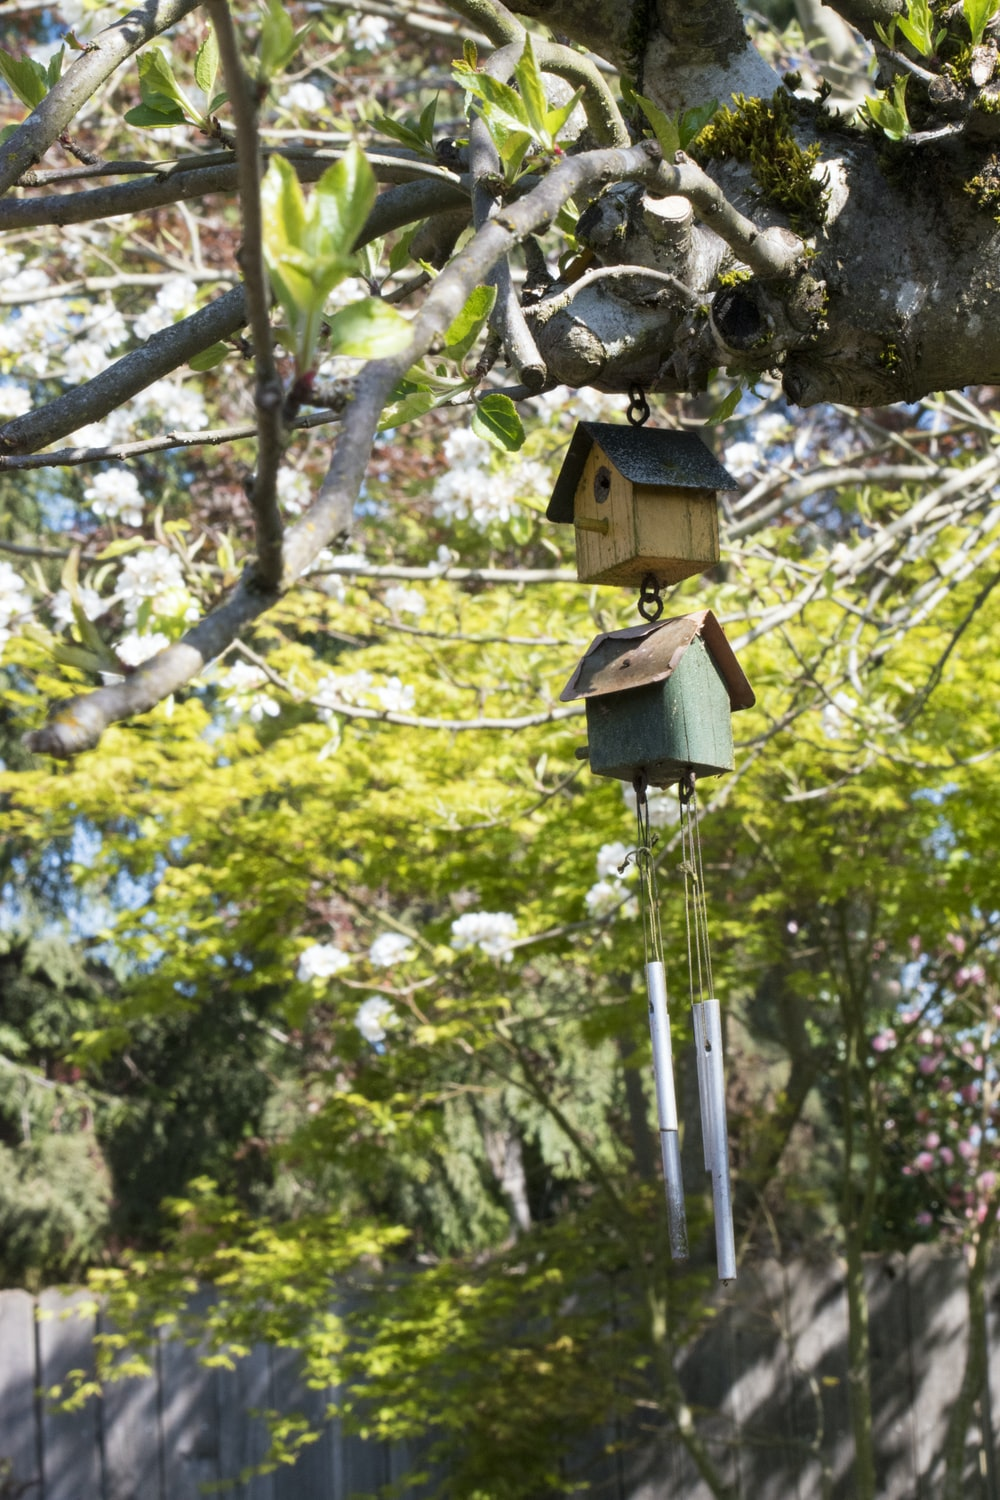 brown wooden birdhouse on tree branch during daytime